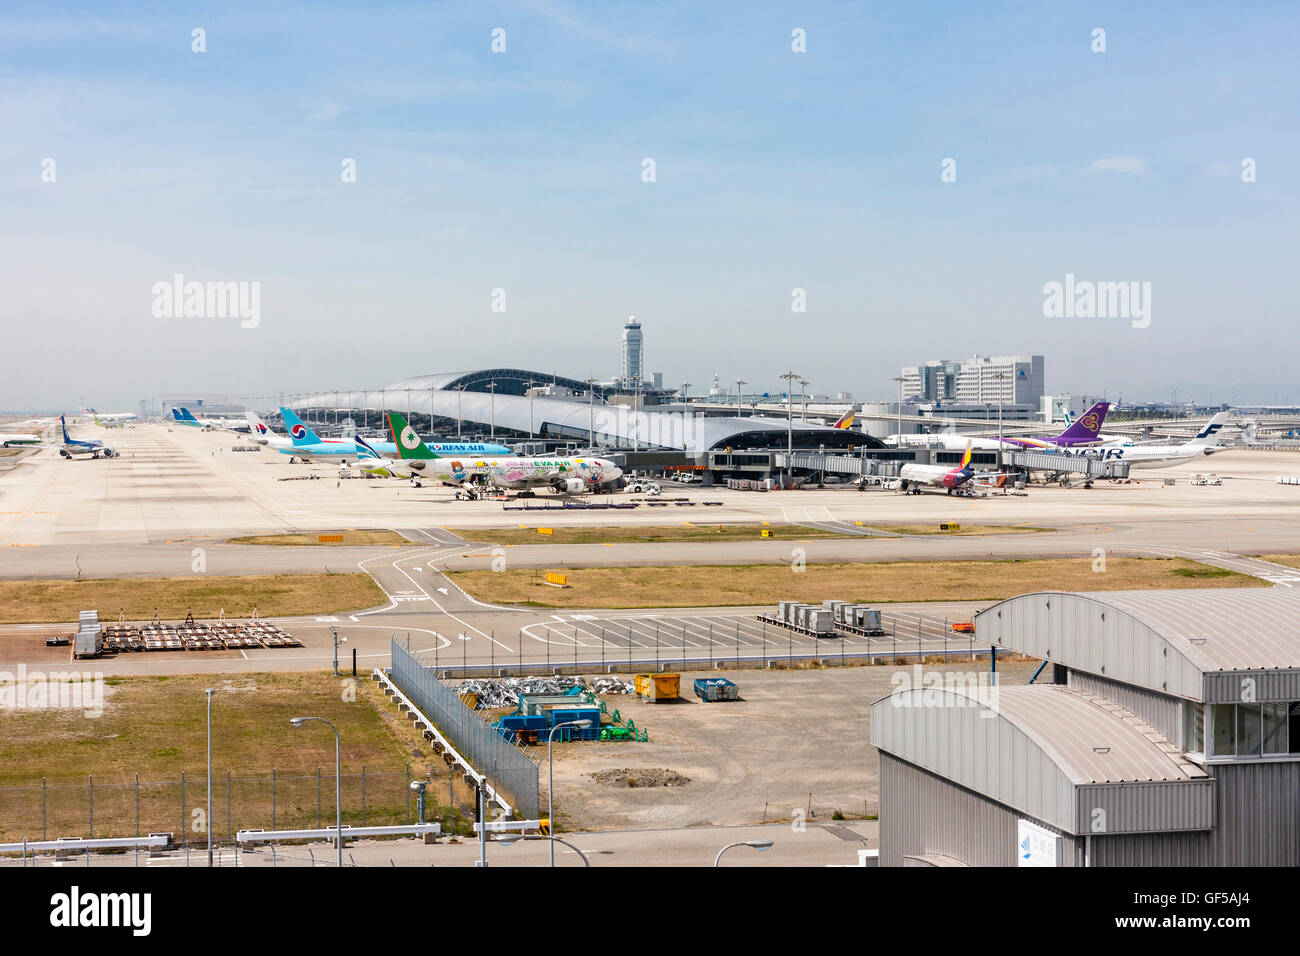 Japan, Kansai airport, KIX. Distant view of terminal one with various planes parked from the observation lounge - Stock Image